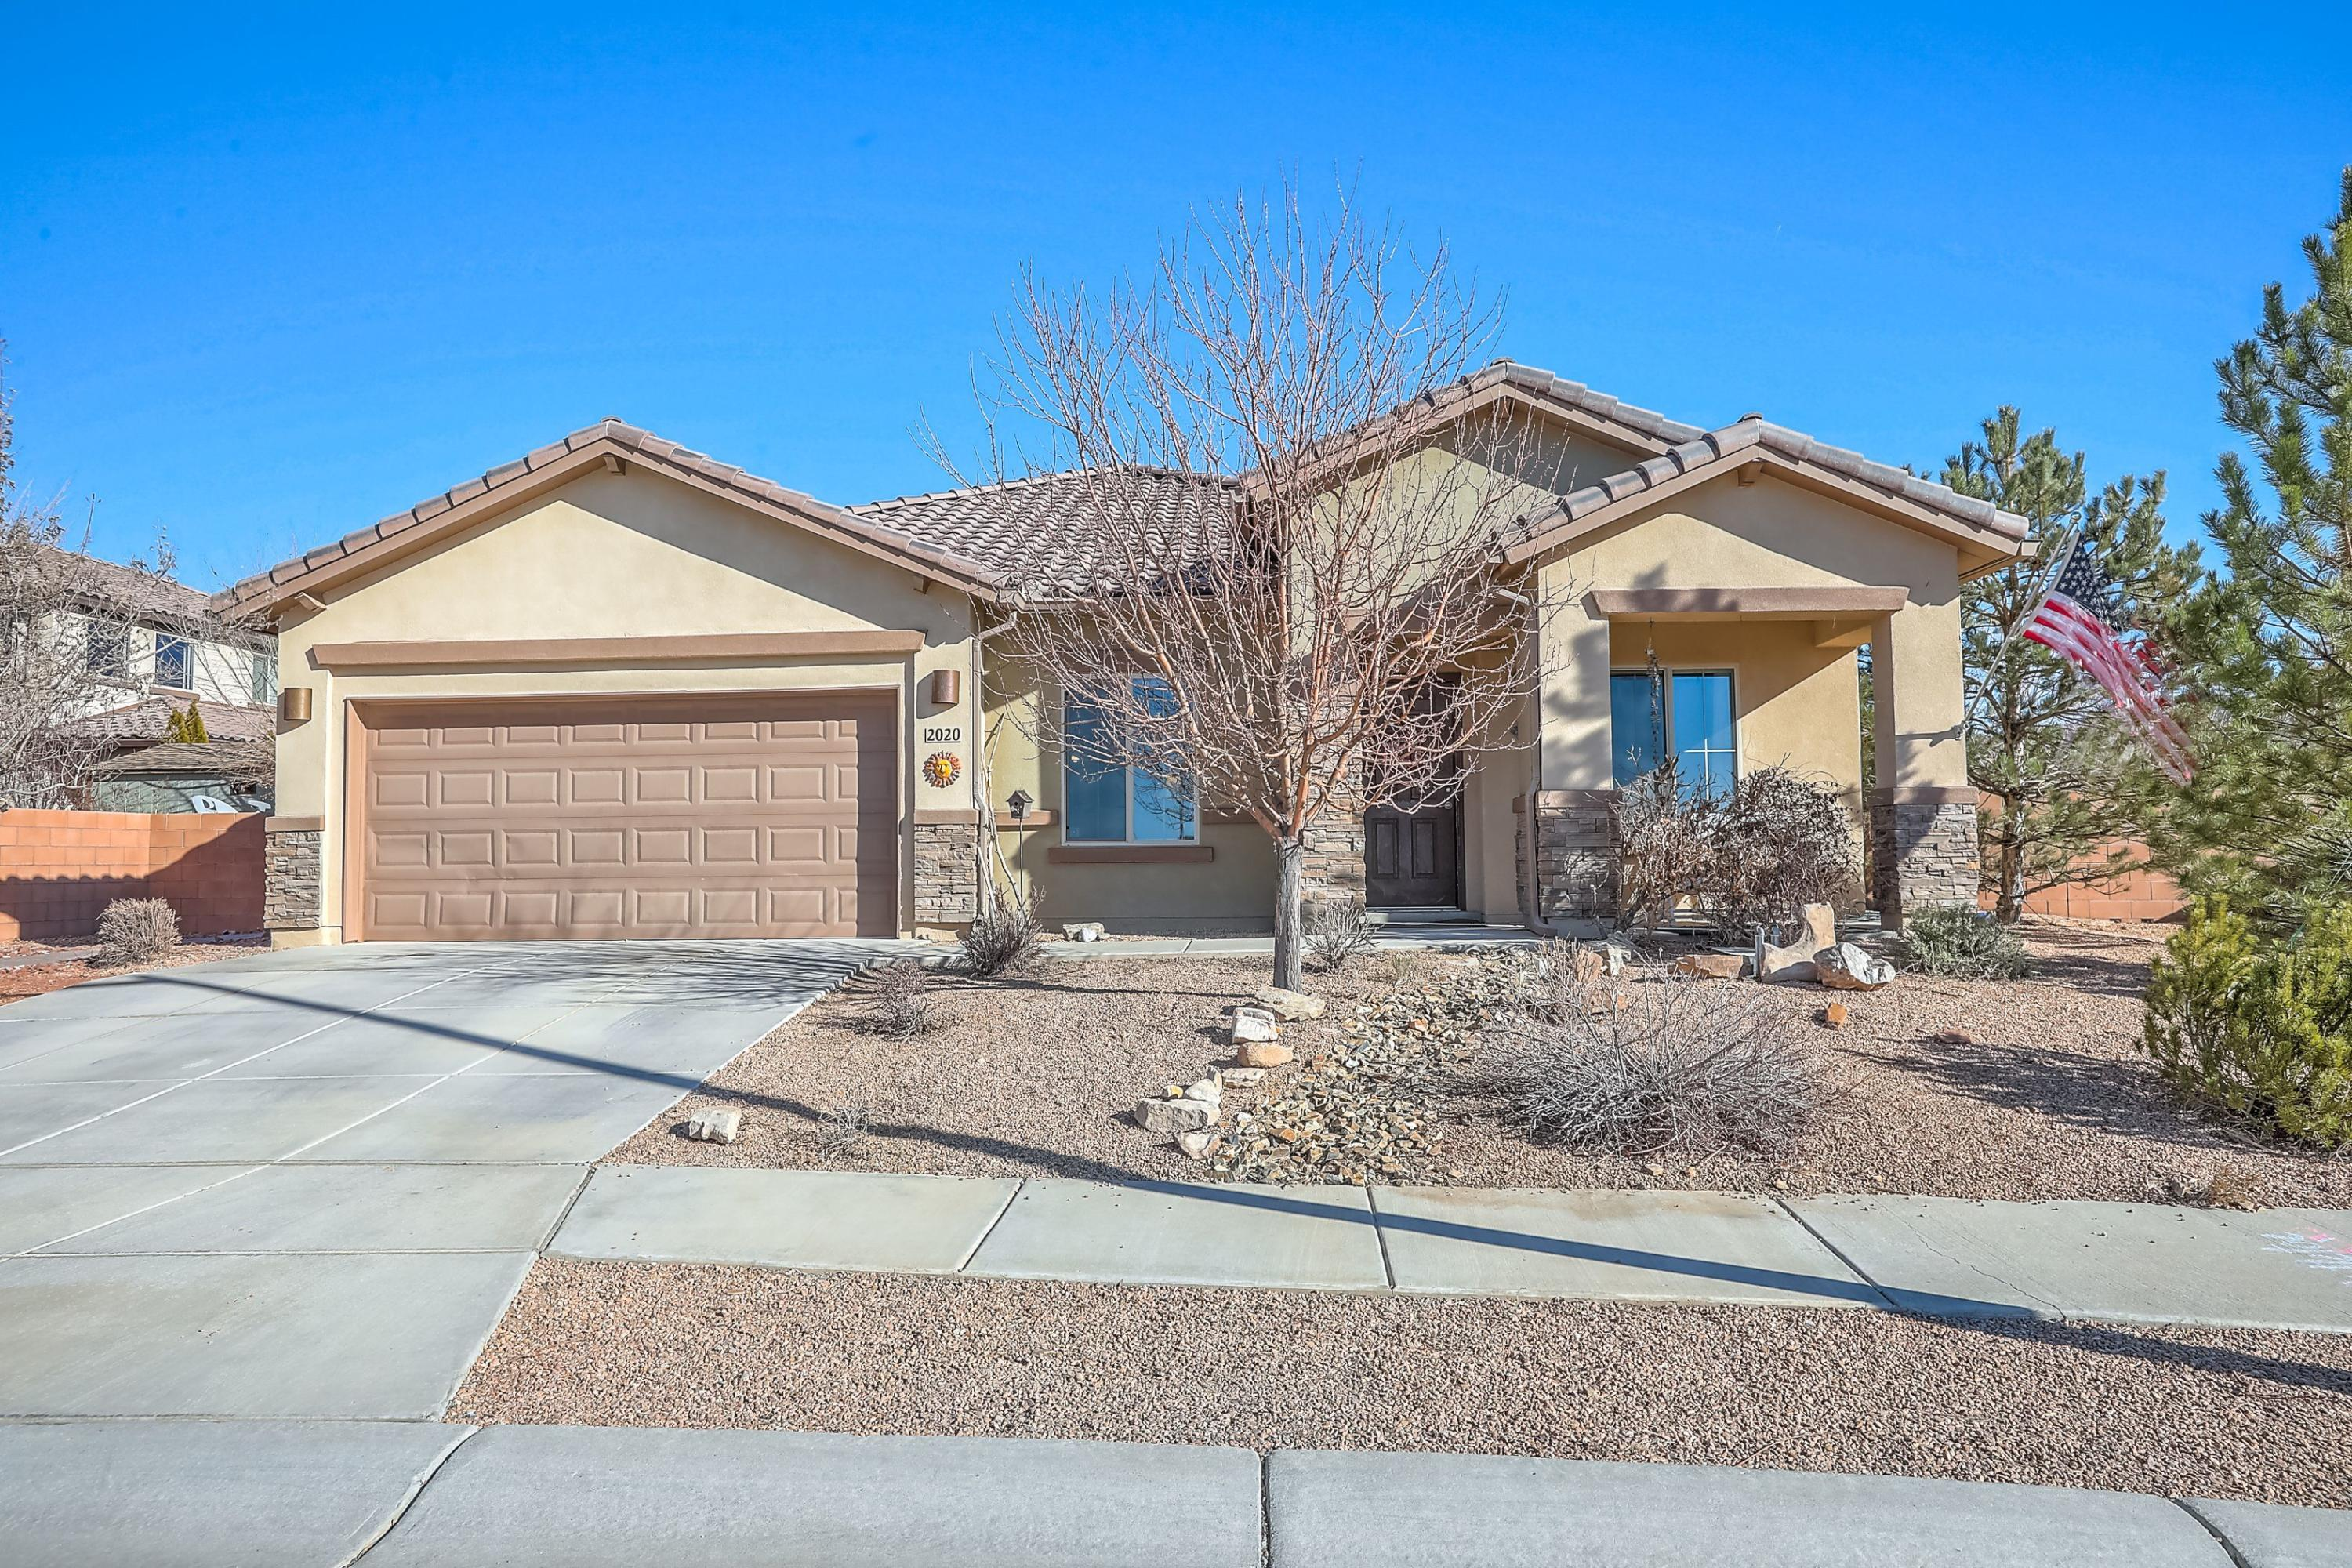 MOVE IN READY! Situated close to the Air Force Base and Sandia Labs. Beautiful Single story home with an Open, Light and Bright Floor Plan. This homes sits on a corner lot, providing extra space for outdoor living.  Large  kitchen with Granite Countertops open to large dining area and 2 pantries.. Open to a living room with a gas burning Fireplace. Home also has a Formal dining area (alternative use as a music room) Home has 4 bedrooms plus a study to have your 5th bedroom.   Guest Bath with 2 sinks. Large walk-in closets. Oversized master with on suite with  Garden tub and separate shower and double sinks.  Don's miss this wonderful home!